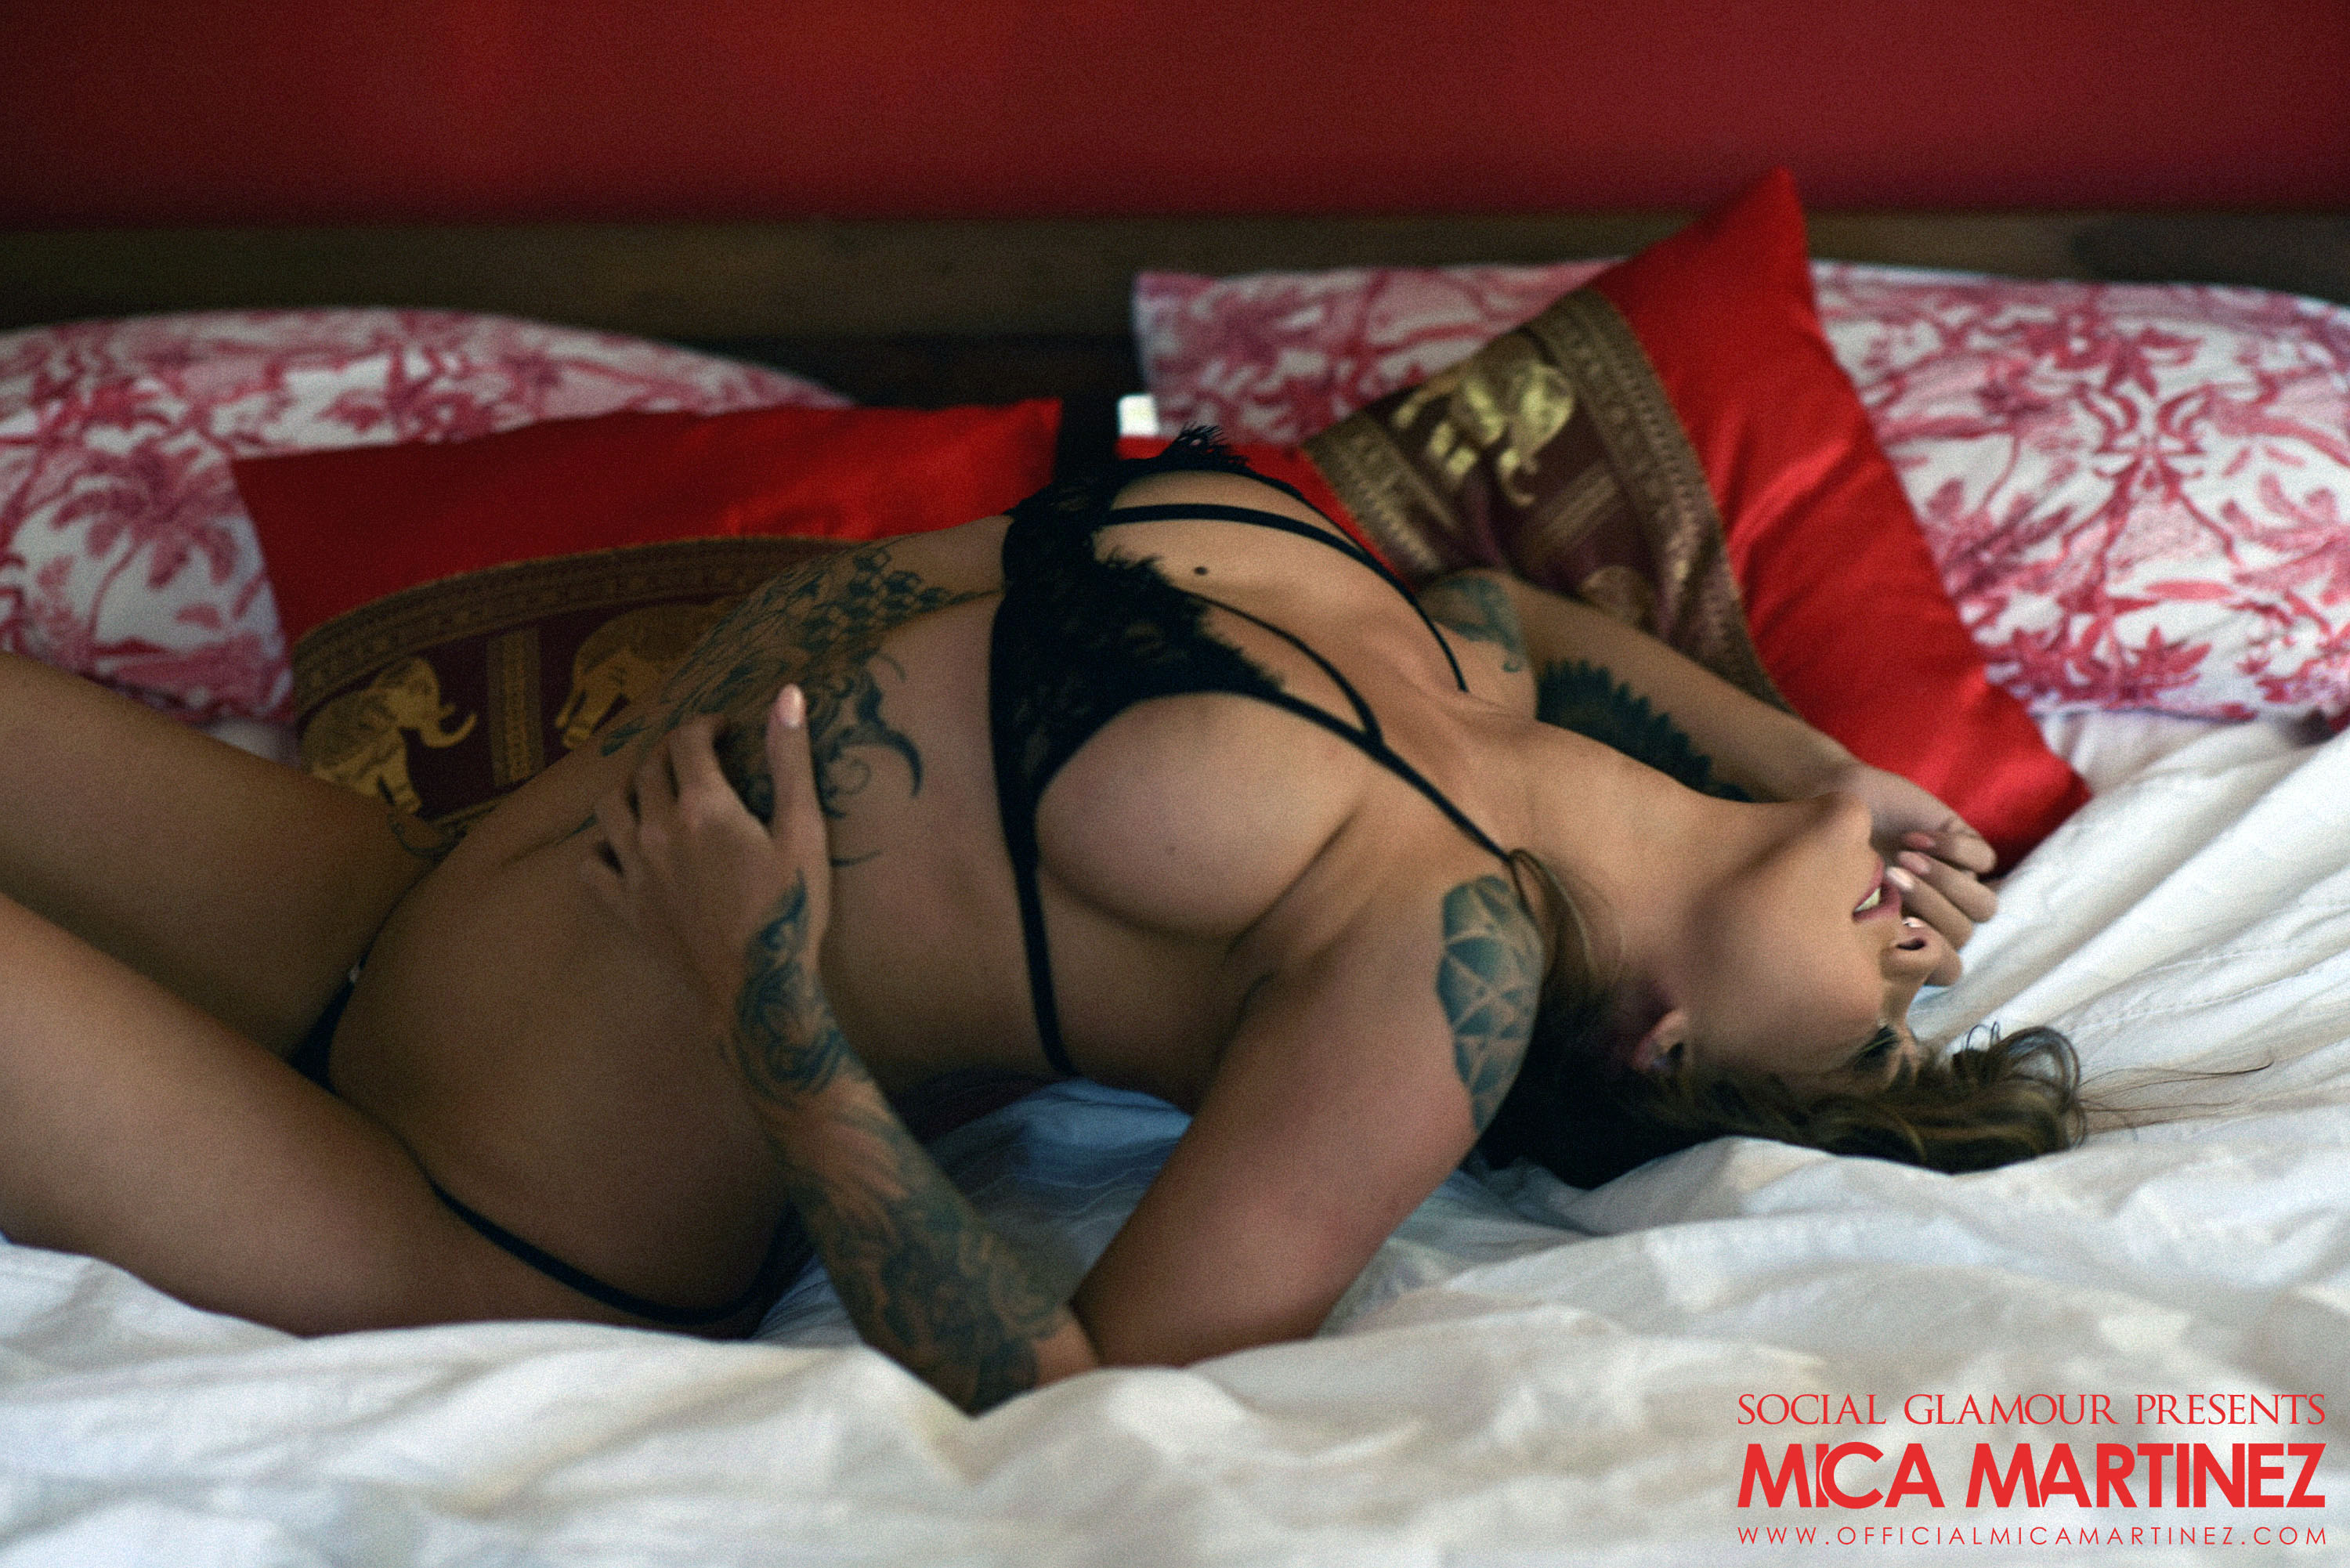 Mica Martinez Big Boobs Black Lingerie on a Bed